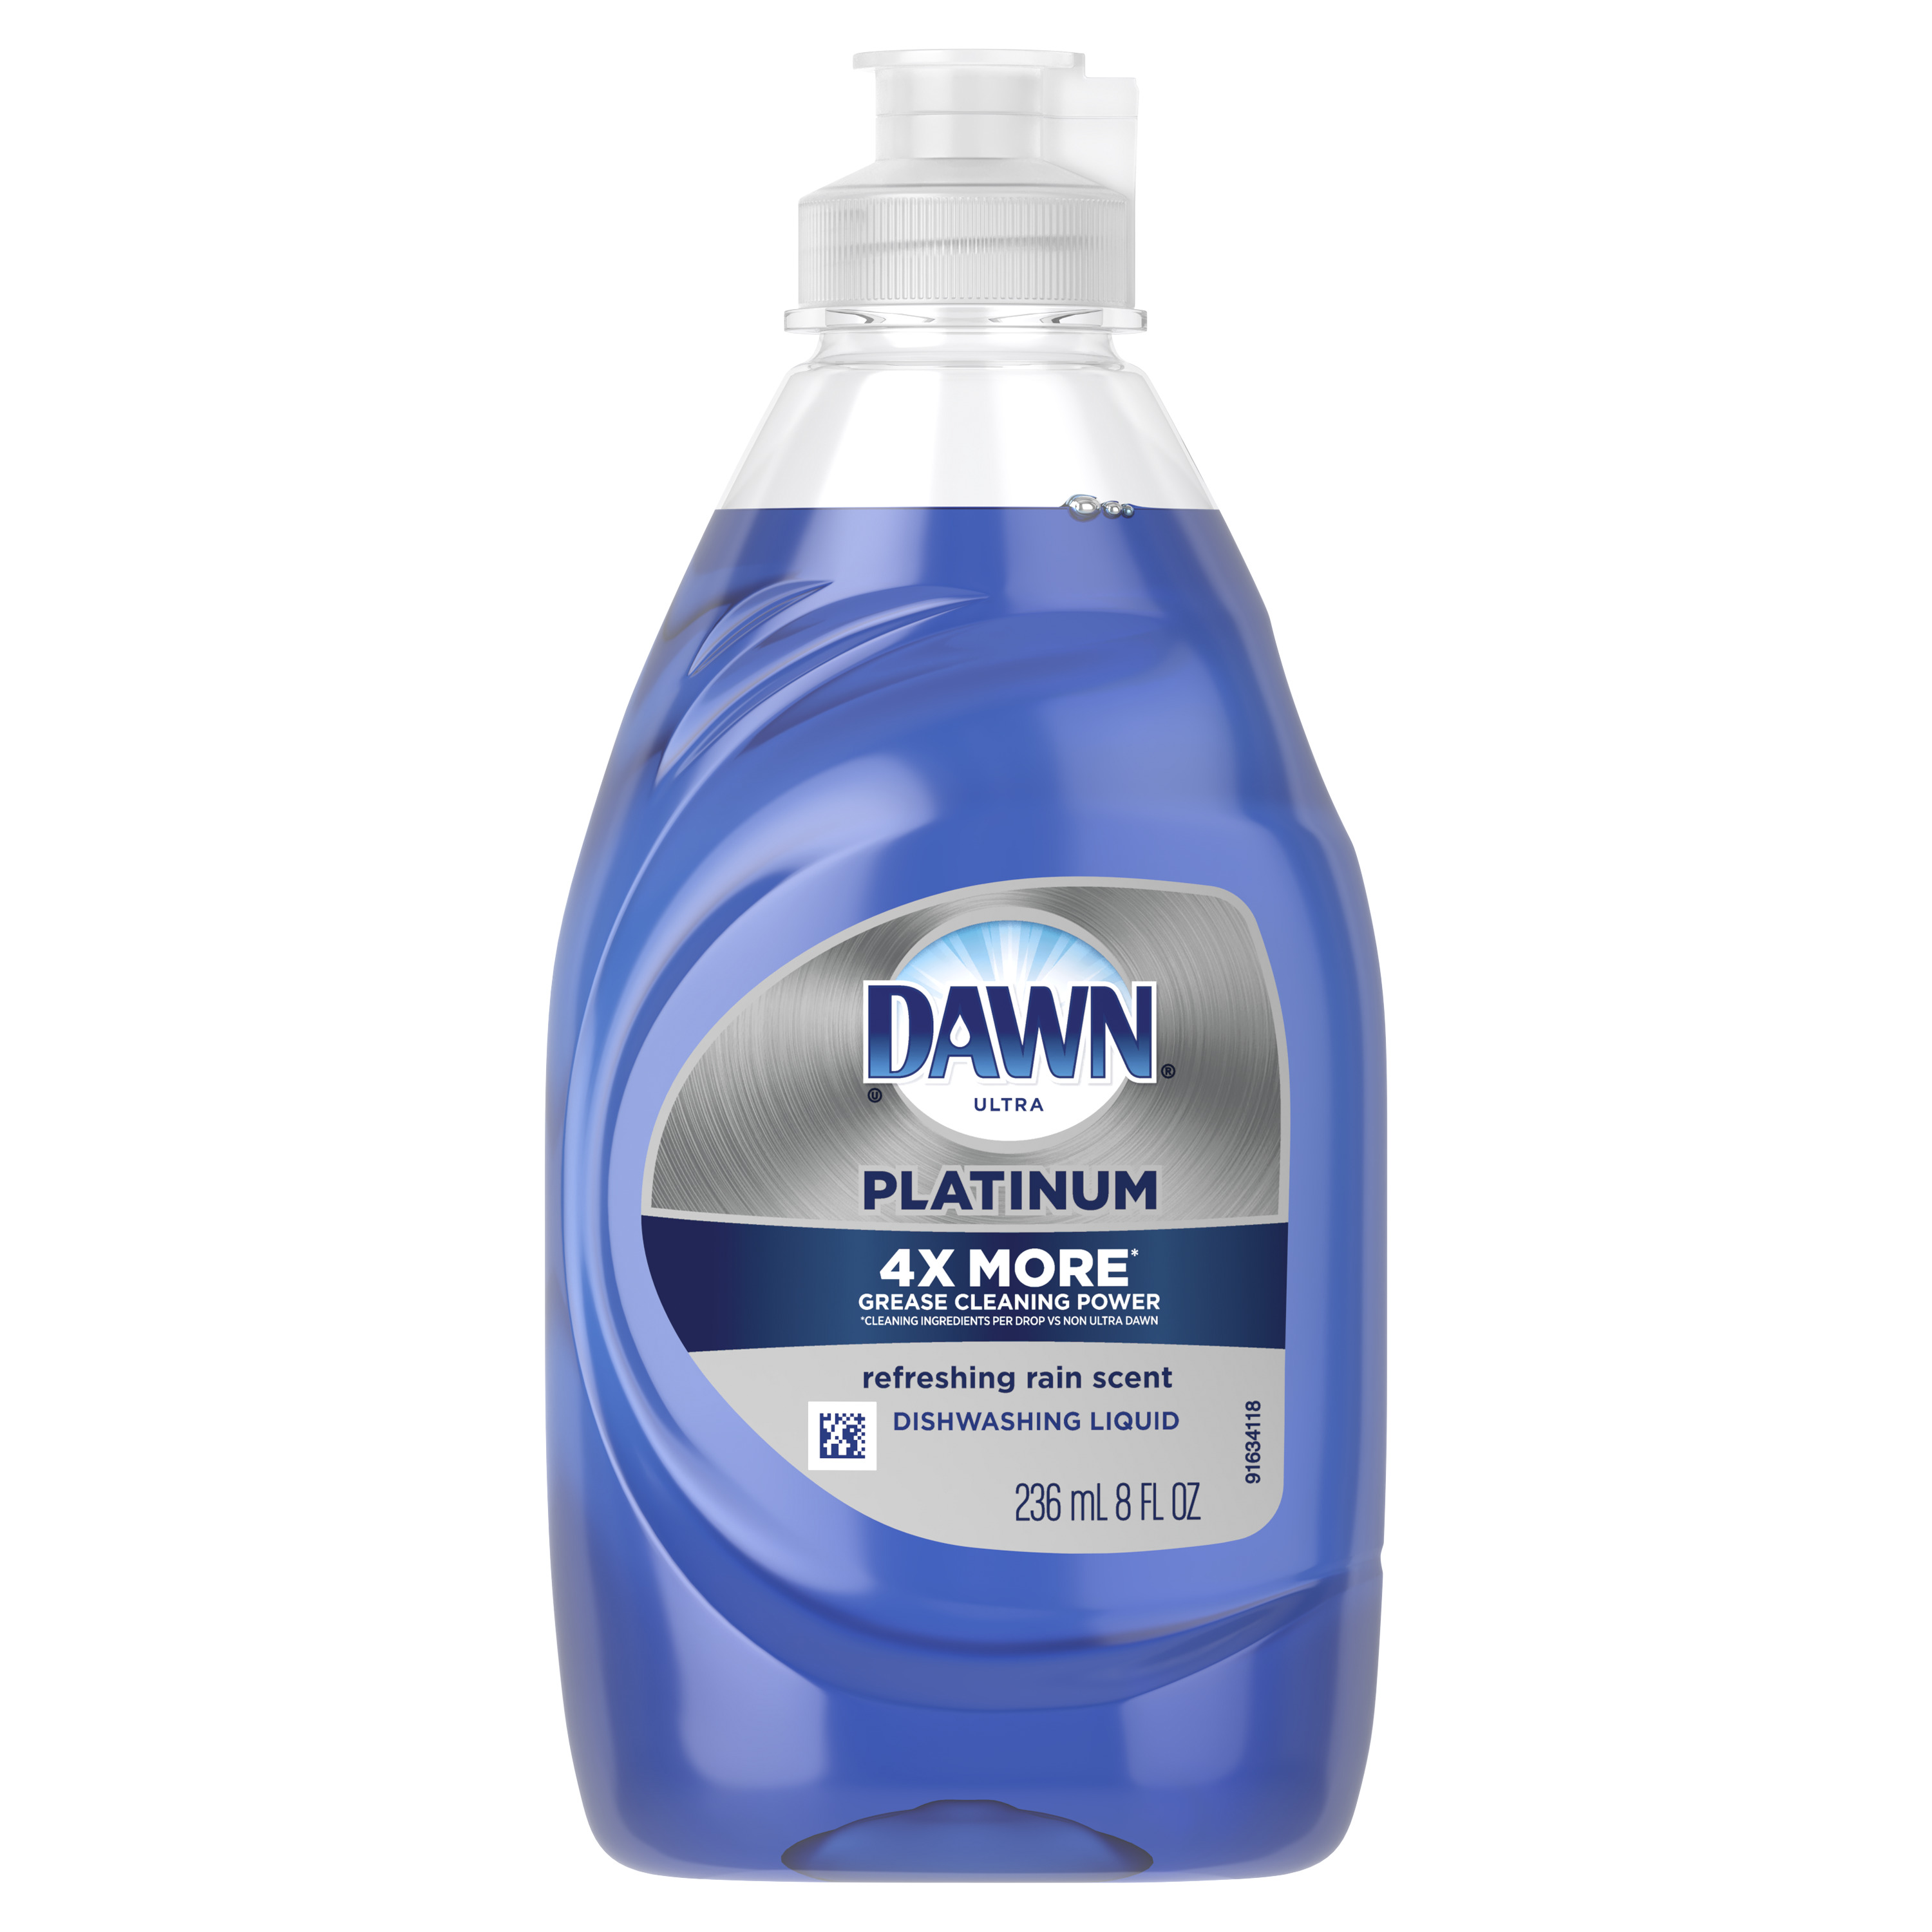 Dawn Platinum Dishwashing Liquid Dish Soap Refreshing Rain 8 oz